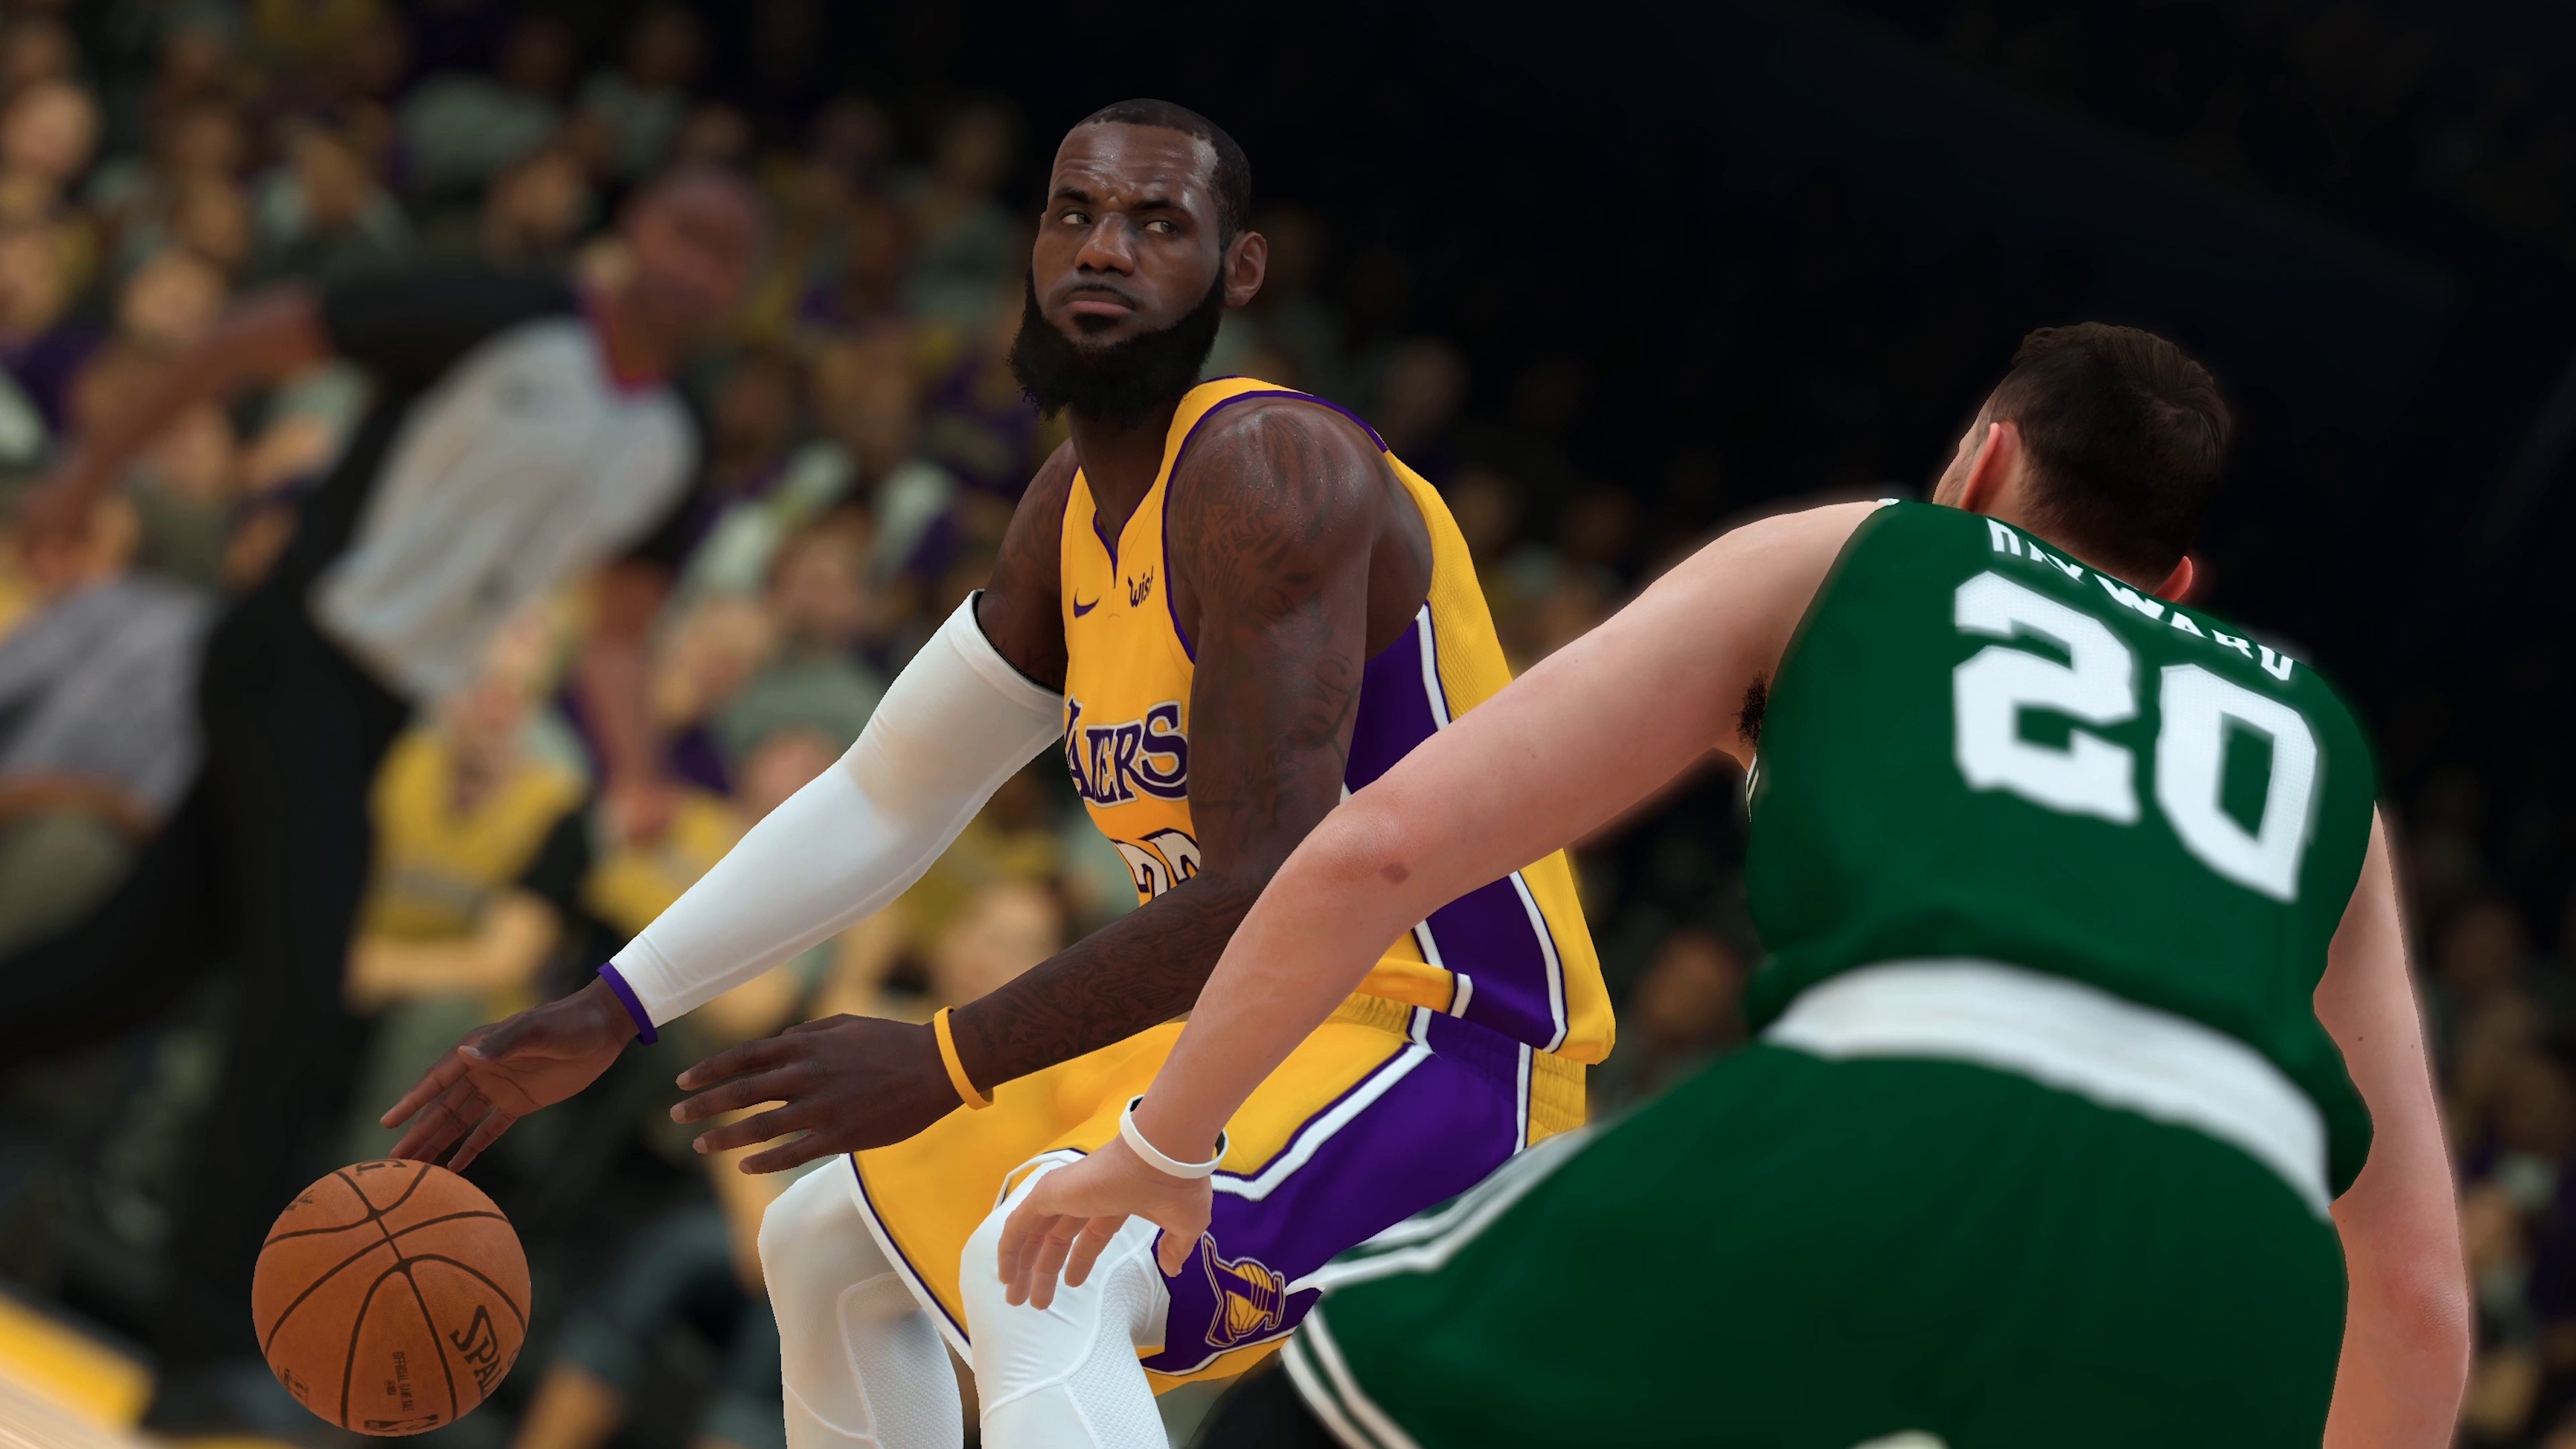 f1e34bfe3592 NBA 2K19 gameplay trailer shows off LeBron